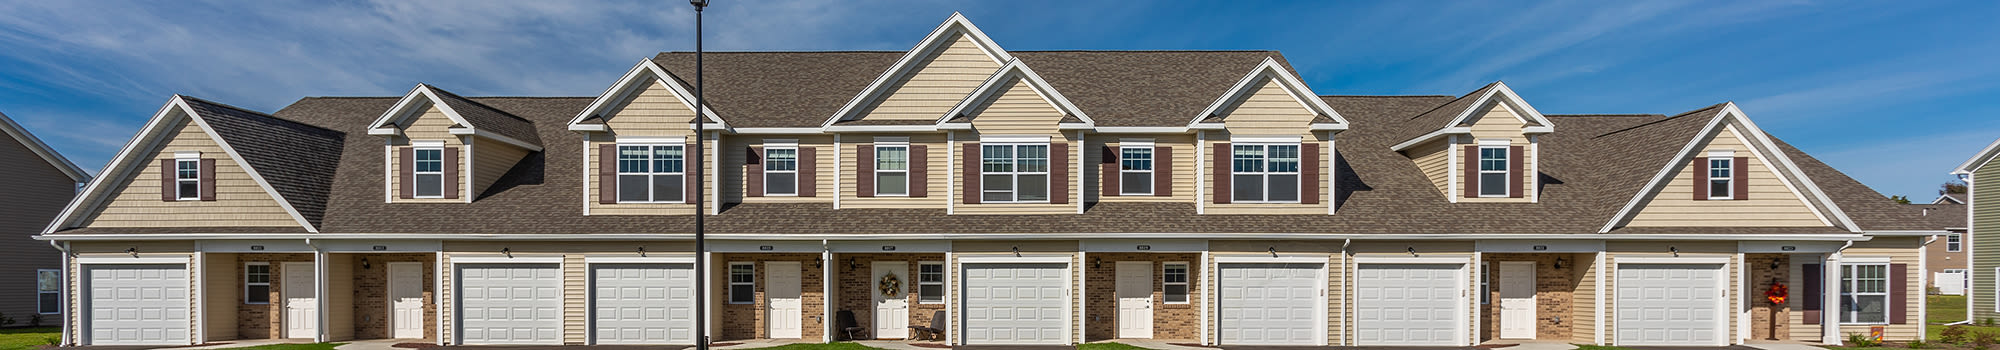 Get directions to Woodland Acres Townhomes